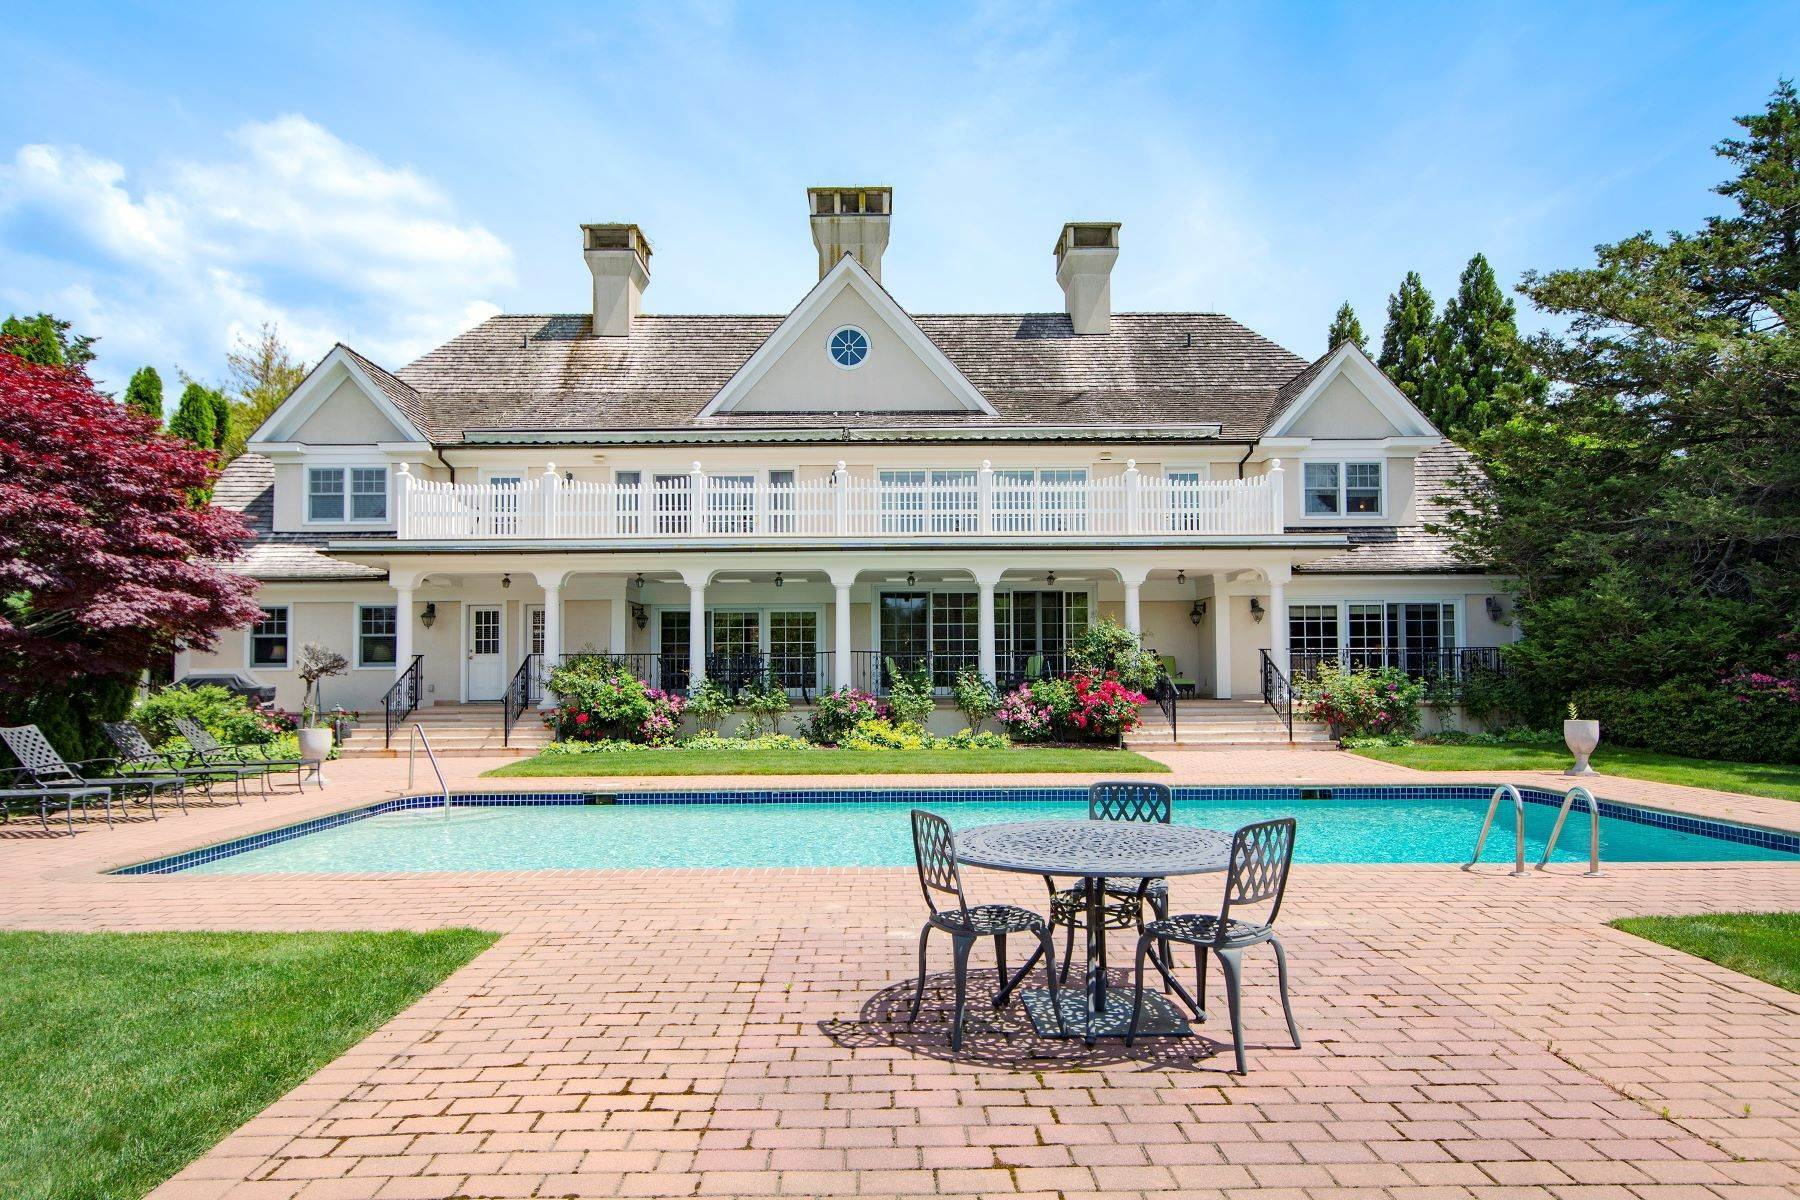 Property for Sale at Pristine Southampton Estate With Pool 64 Down East Lane Southampton, New York 11968 United States